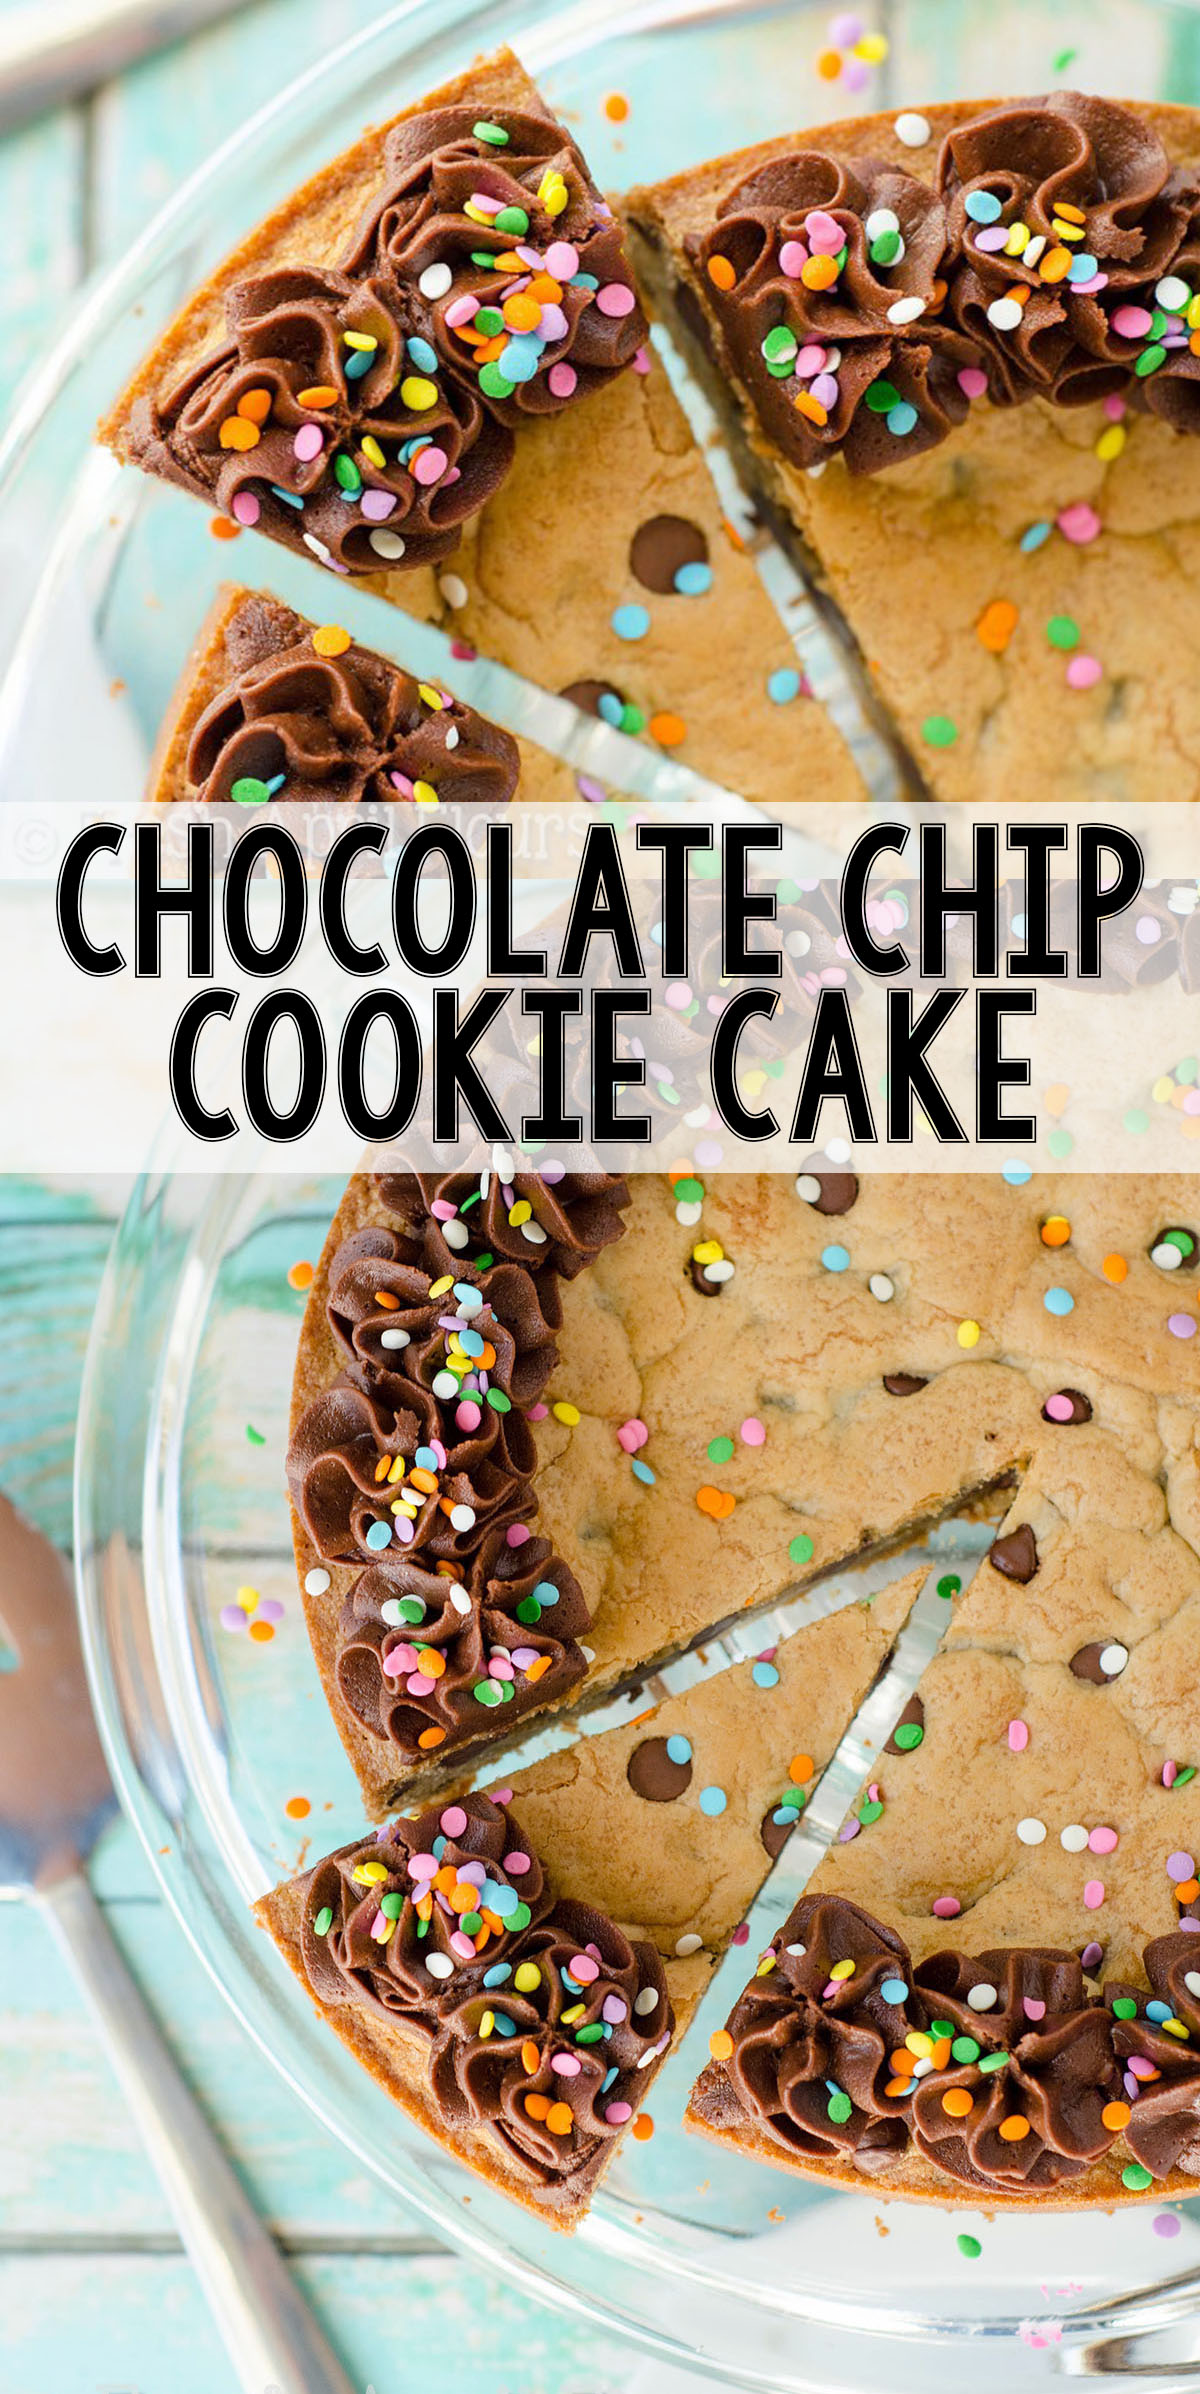 The best way to eat a chocolate chip cookie! Soft in the center, chewy on the edges, and the perfect canvas for decorating for your celebration!